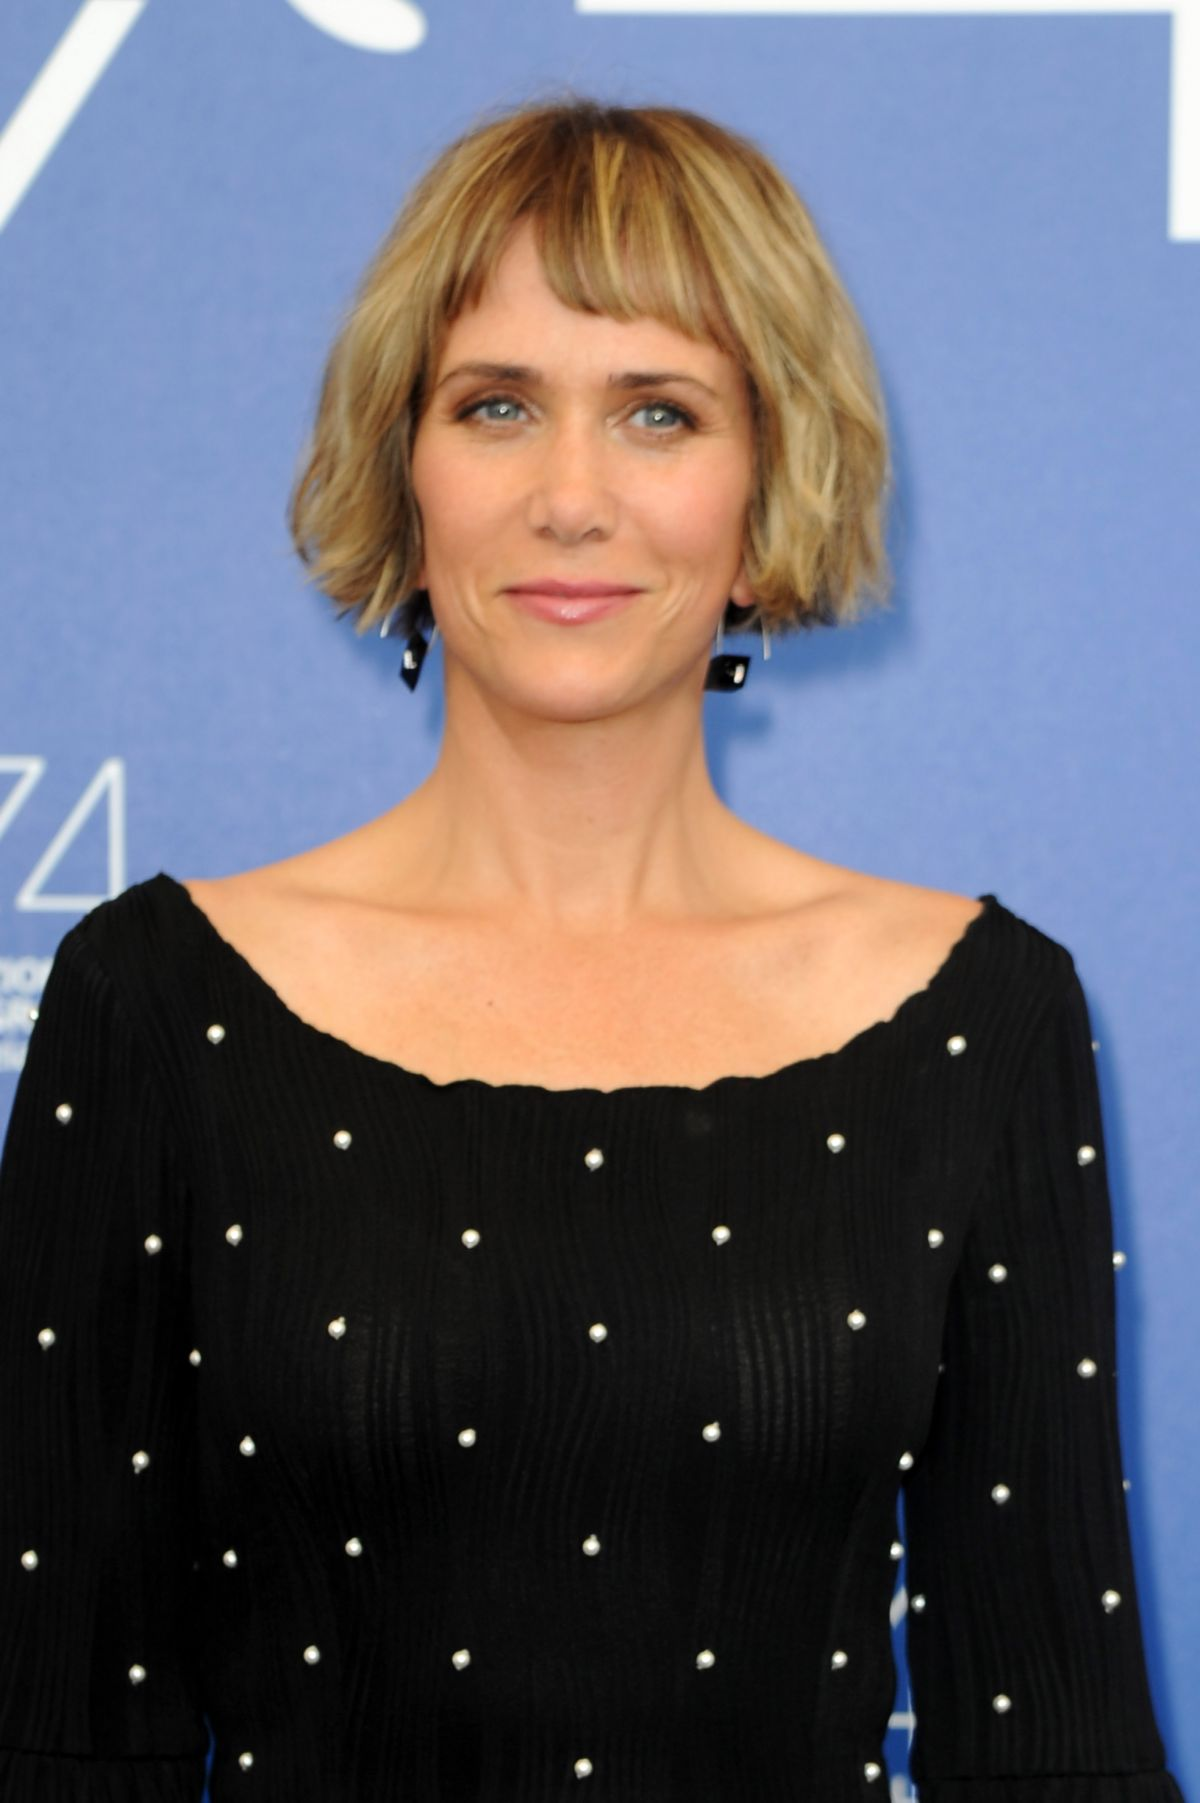 KRISTEN WIIG at Downsizing Photocall at Venice International Film Festival 08/30/2017